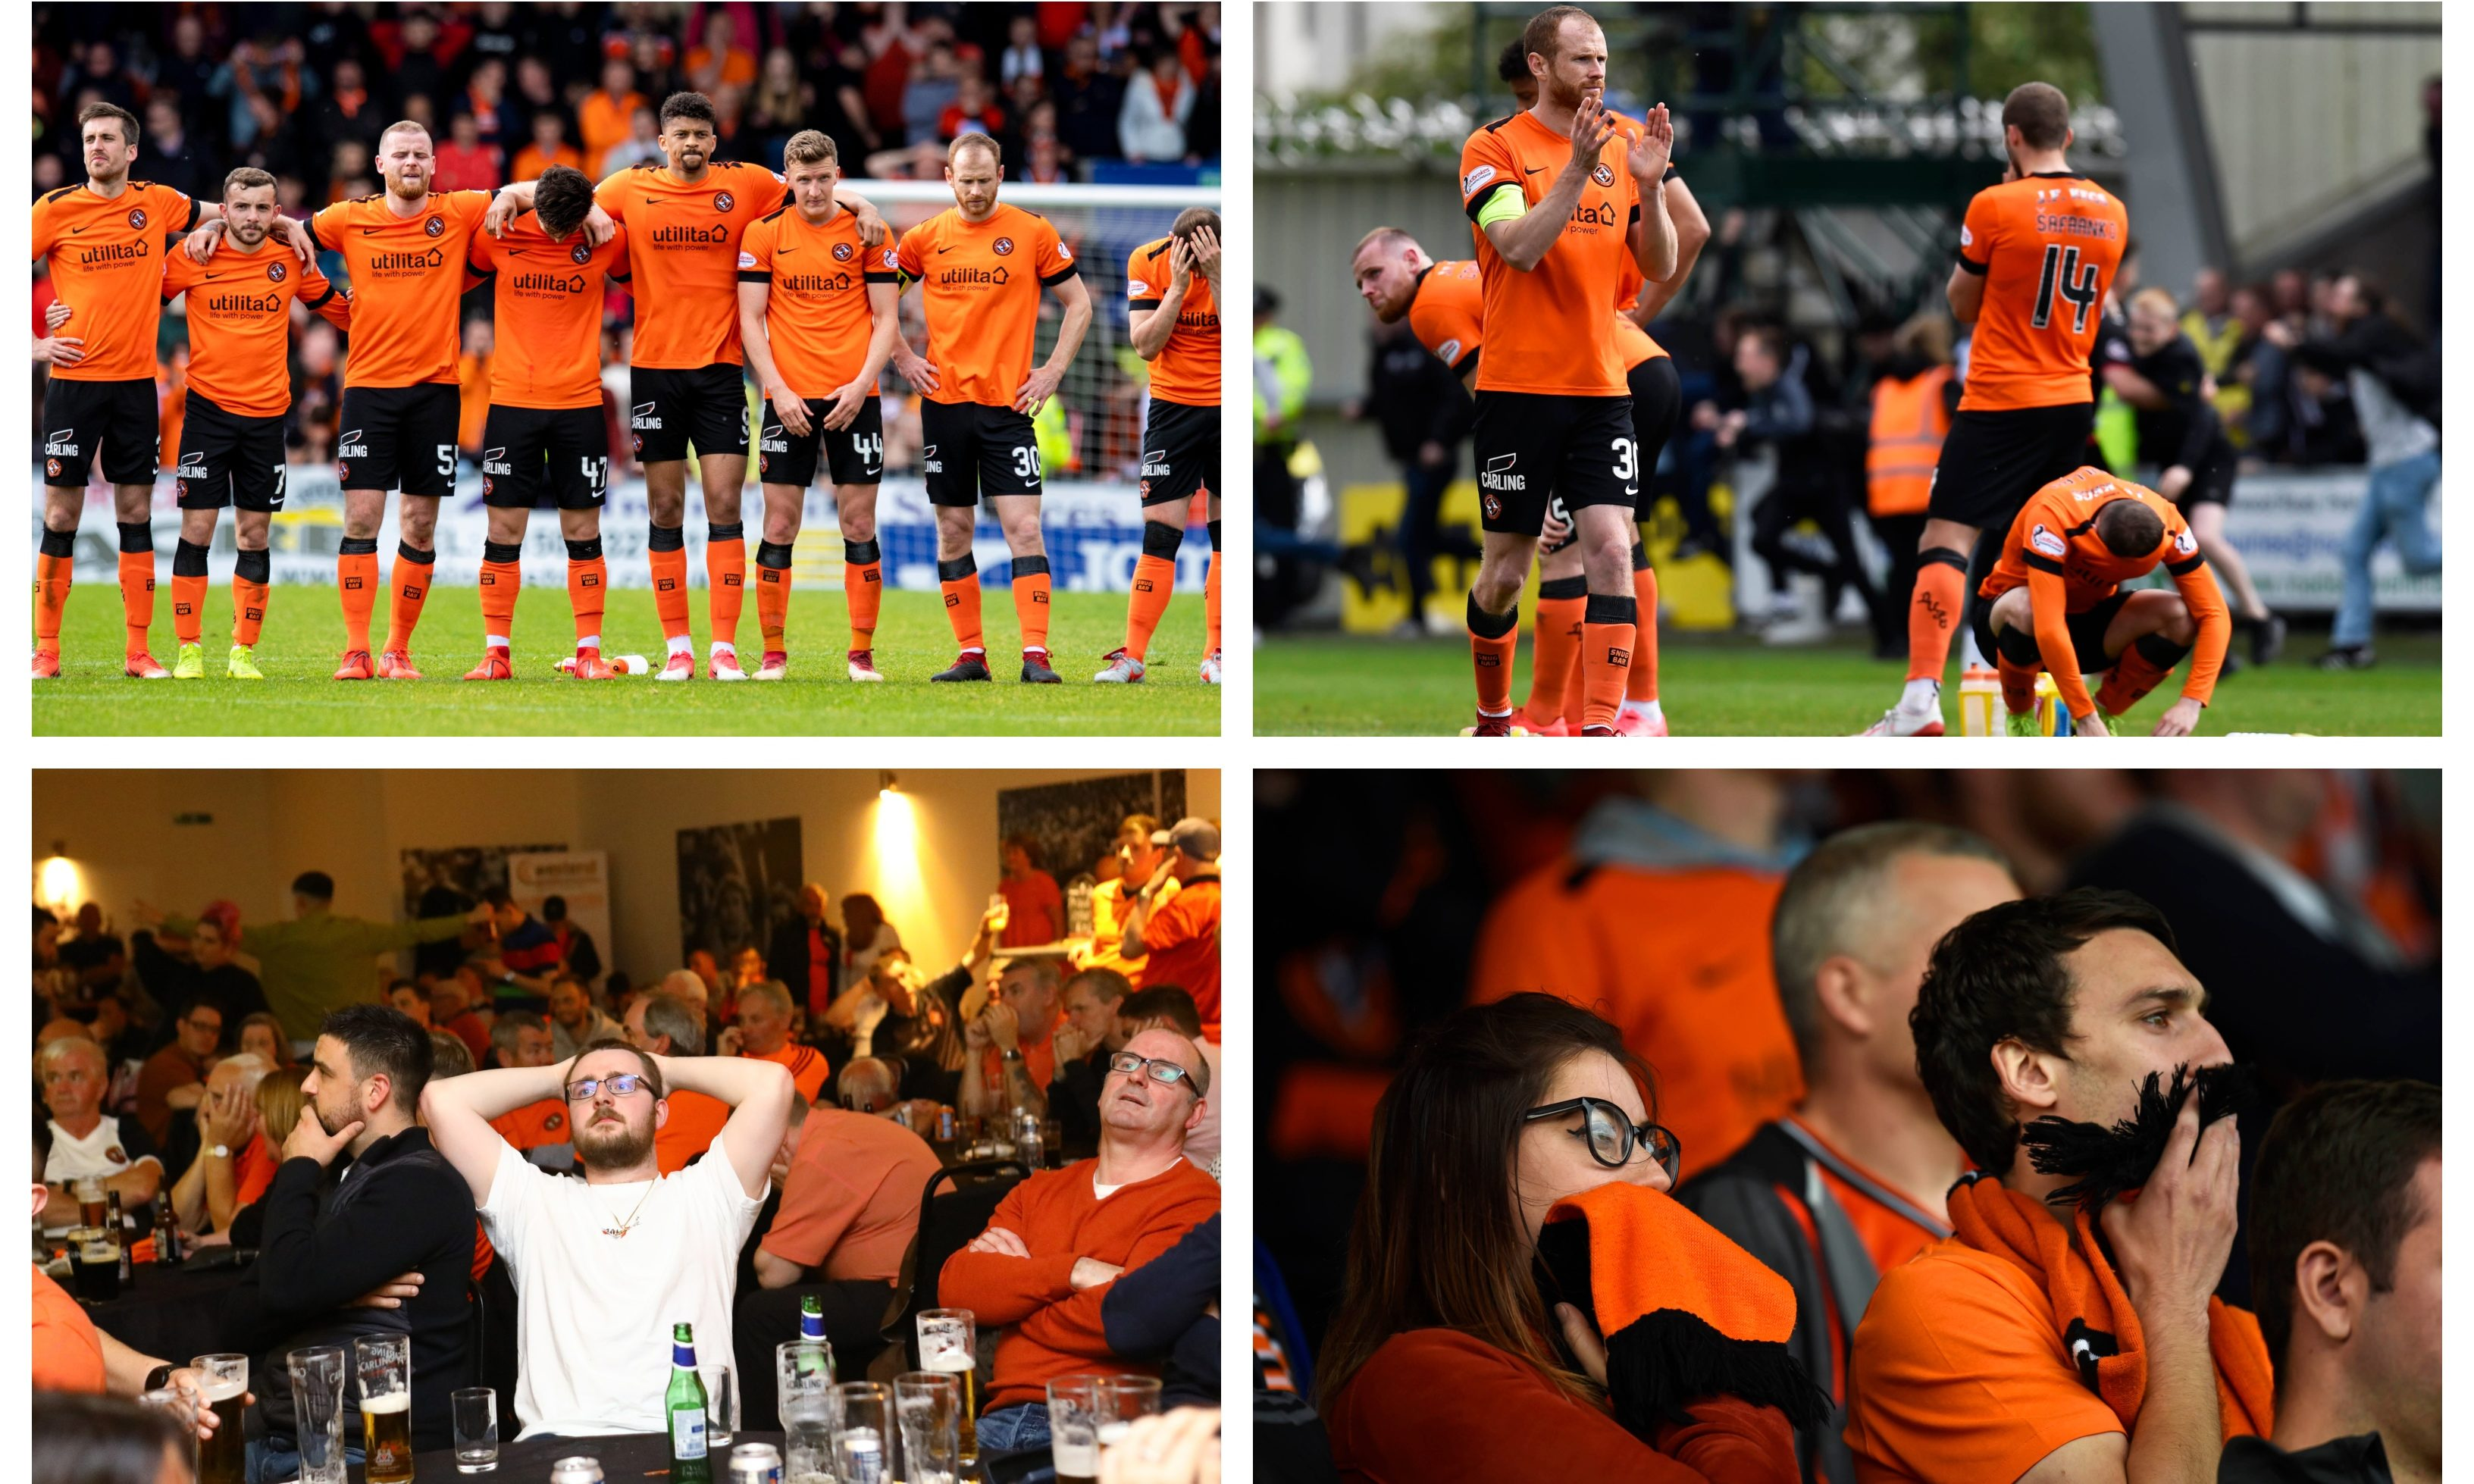 Dundee United players and fans react after the side lost to St Mirren in the play-off finals.